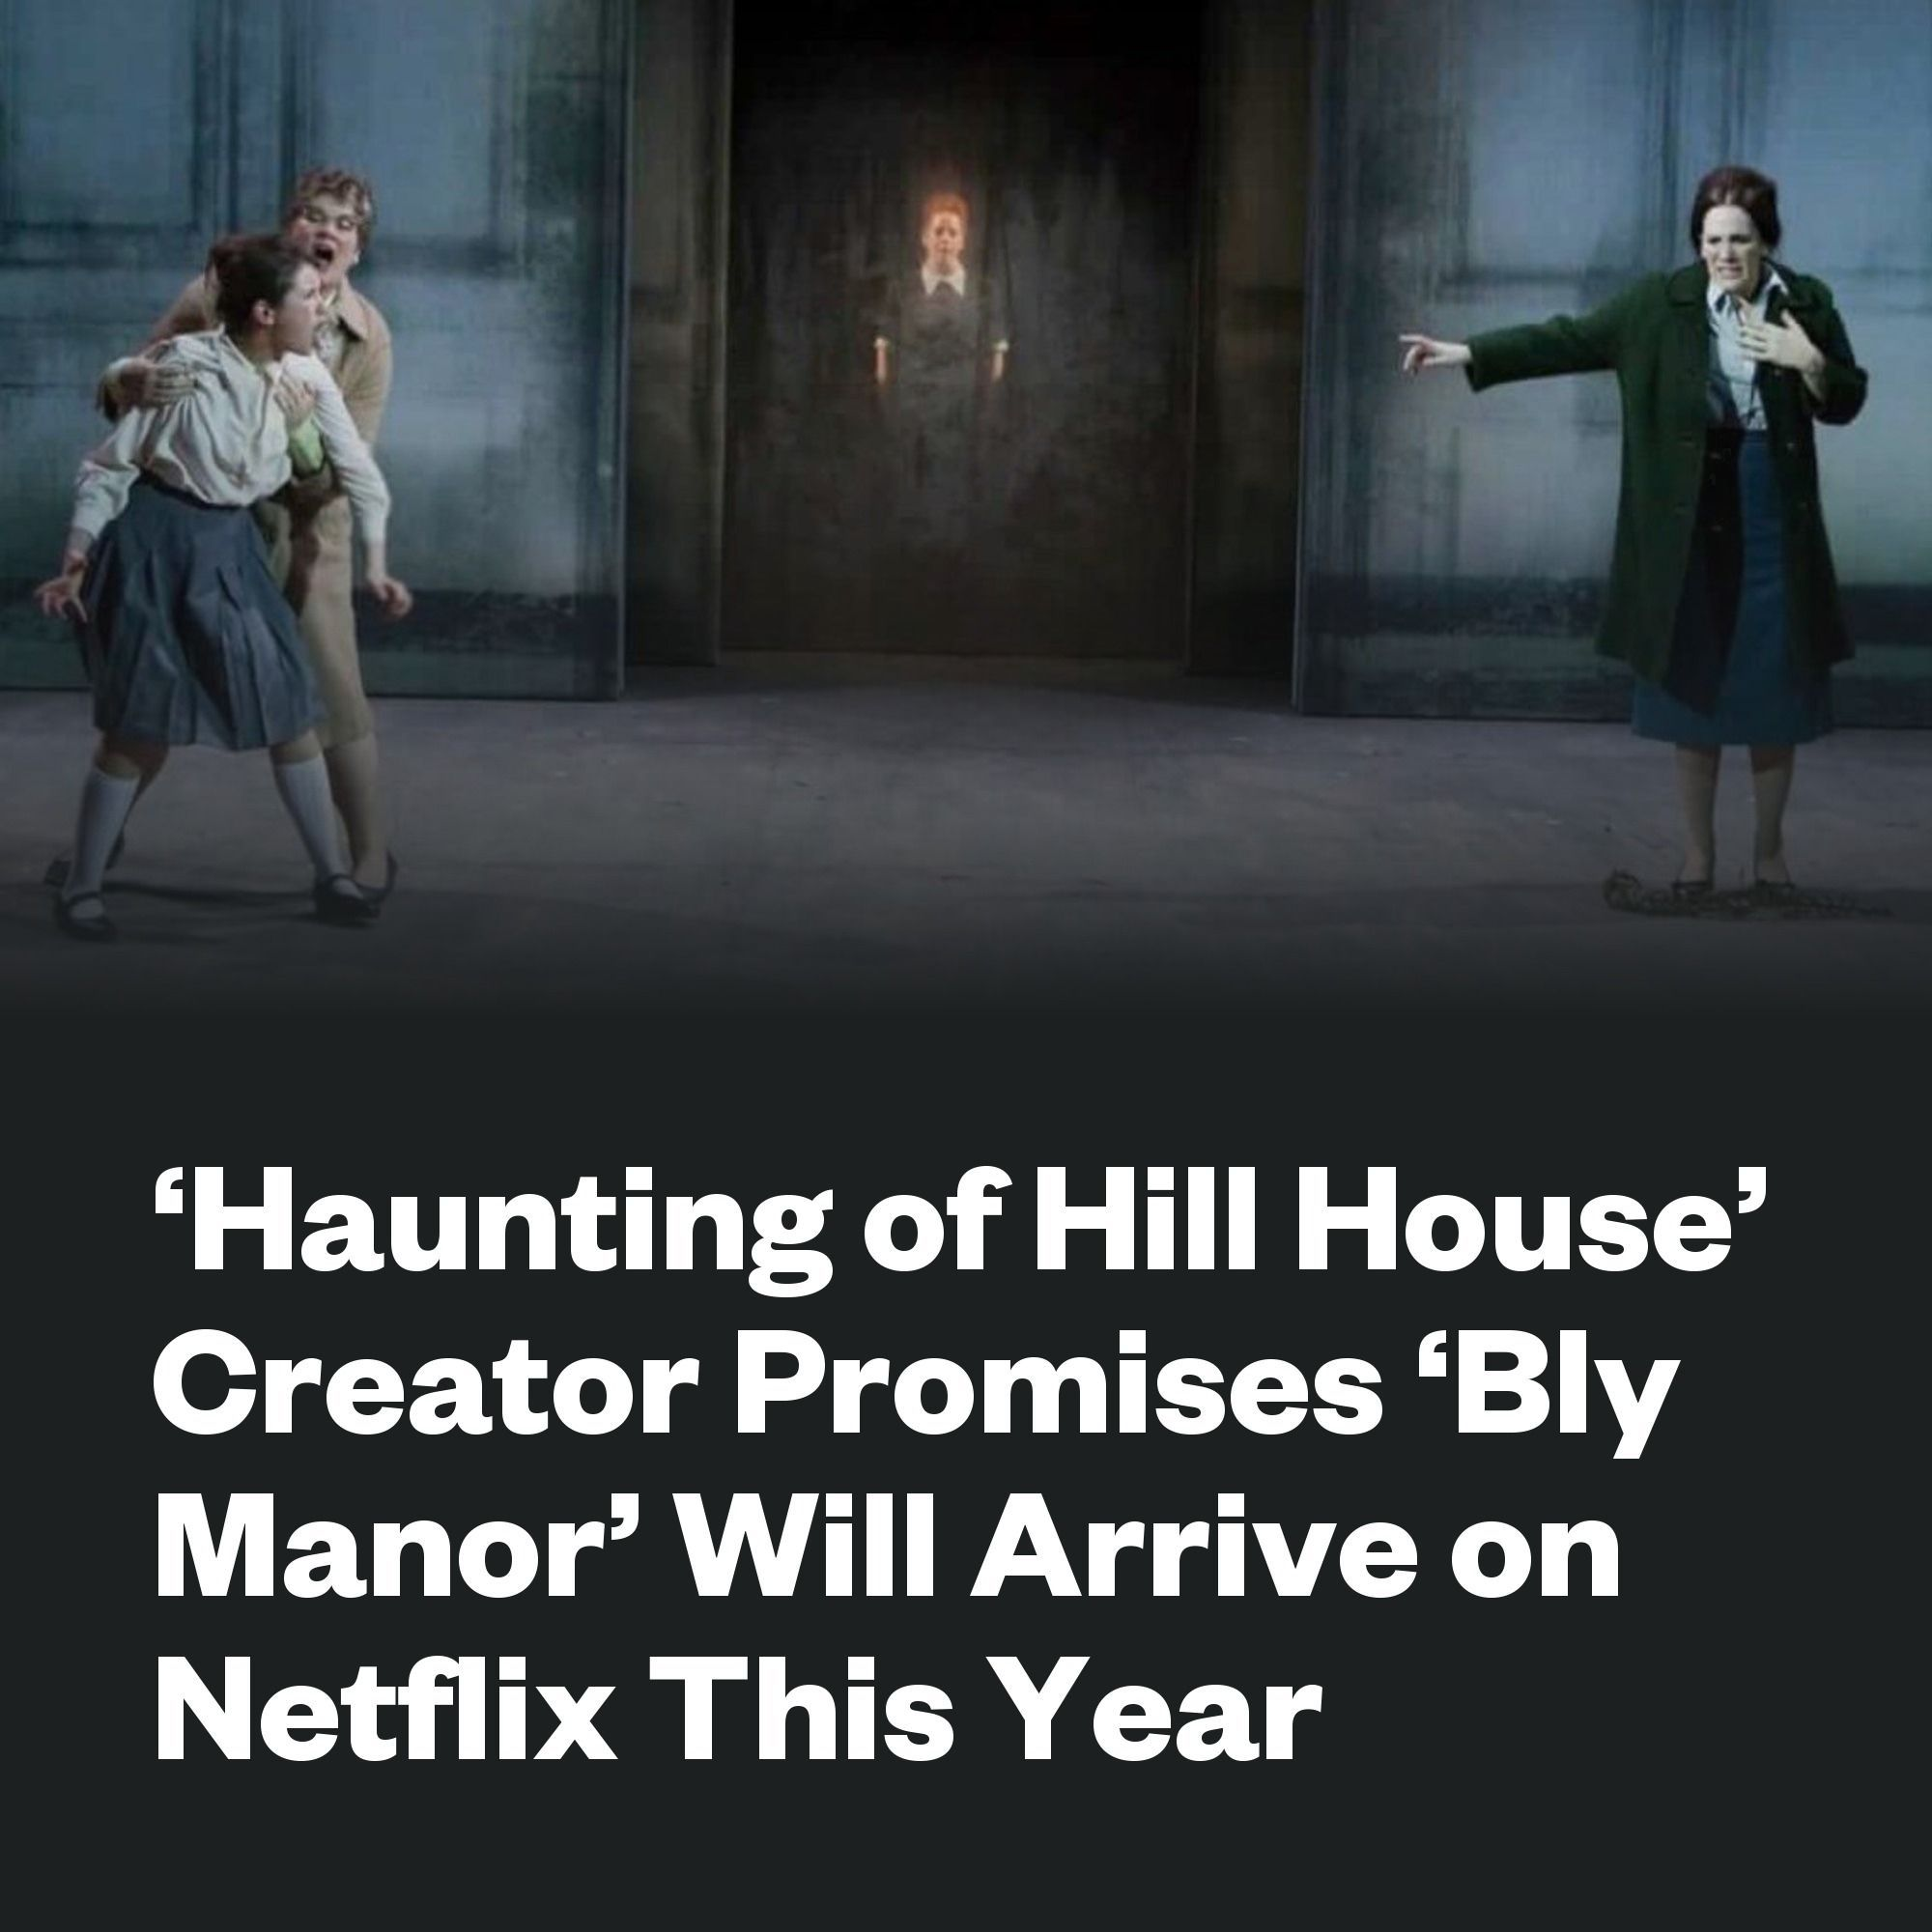 Haunting Of Hill House Creator Promises Bly Manor Will Arrive On Netflix This Year In 2020 Bly Haunting Netflix